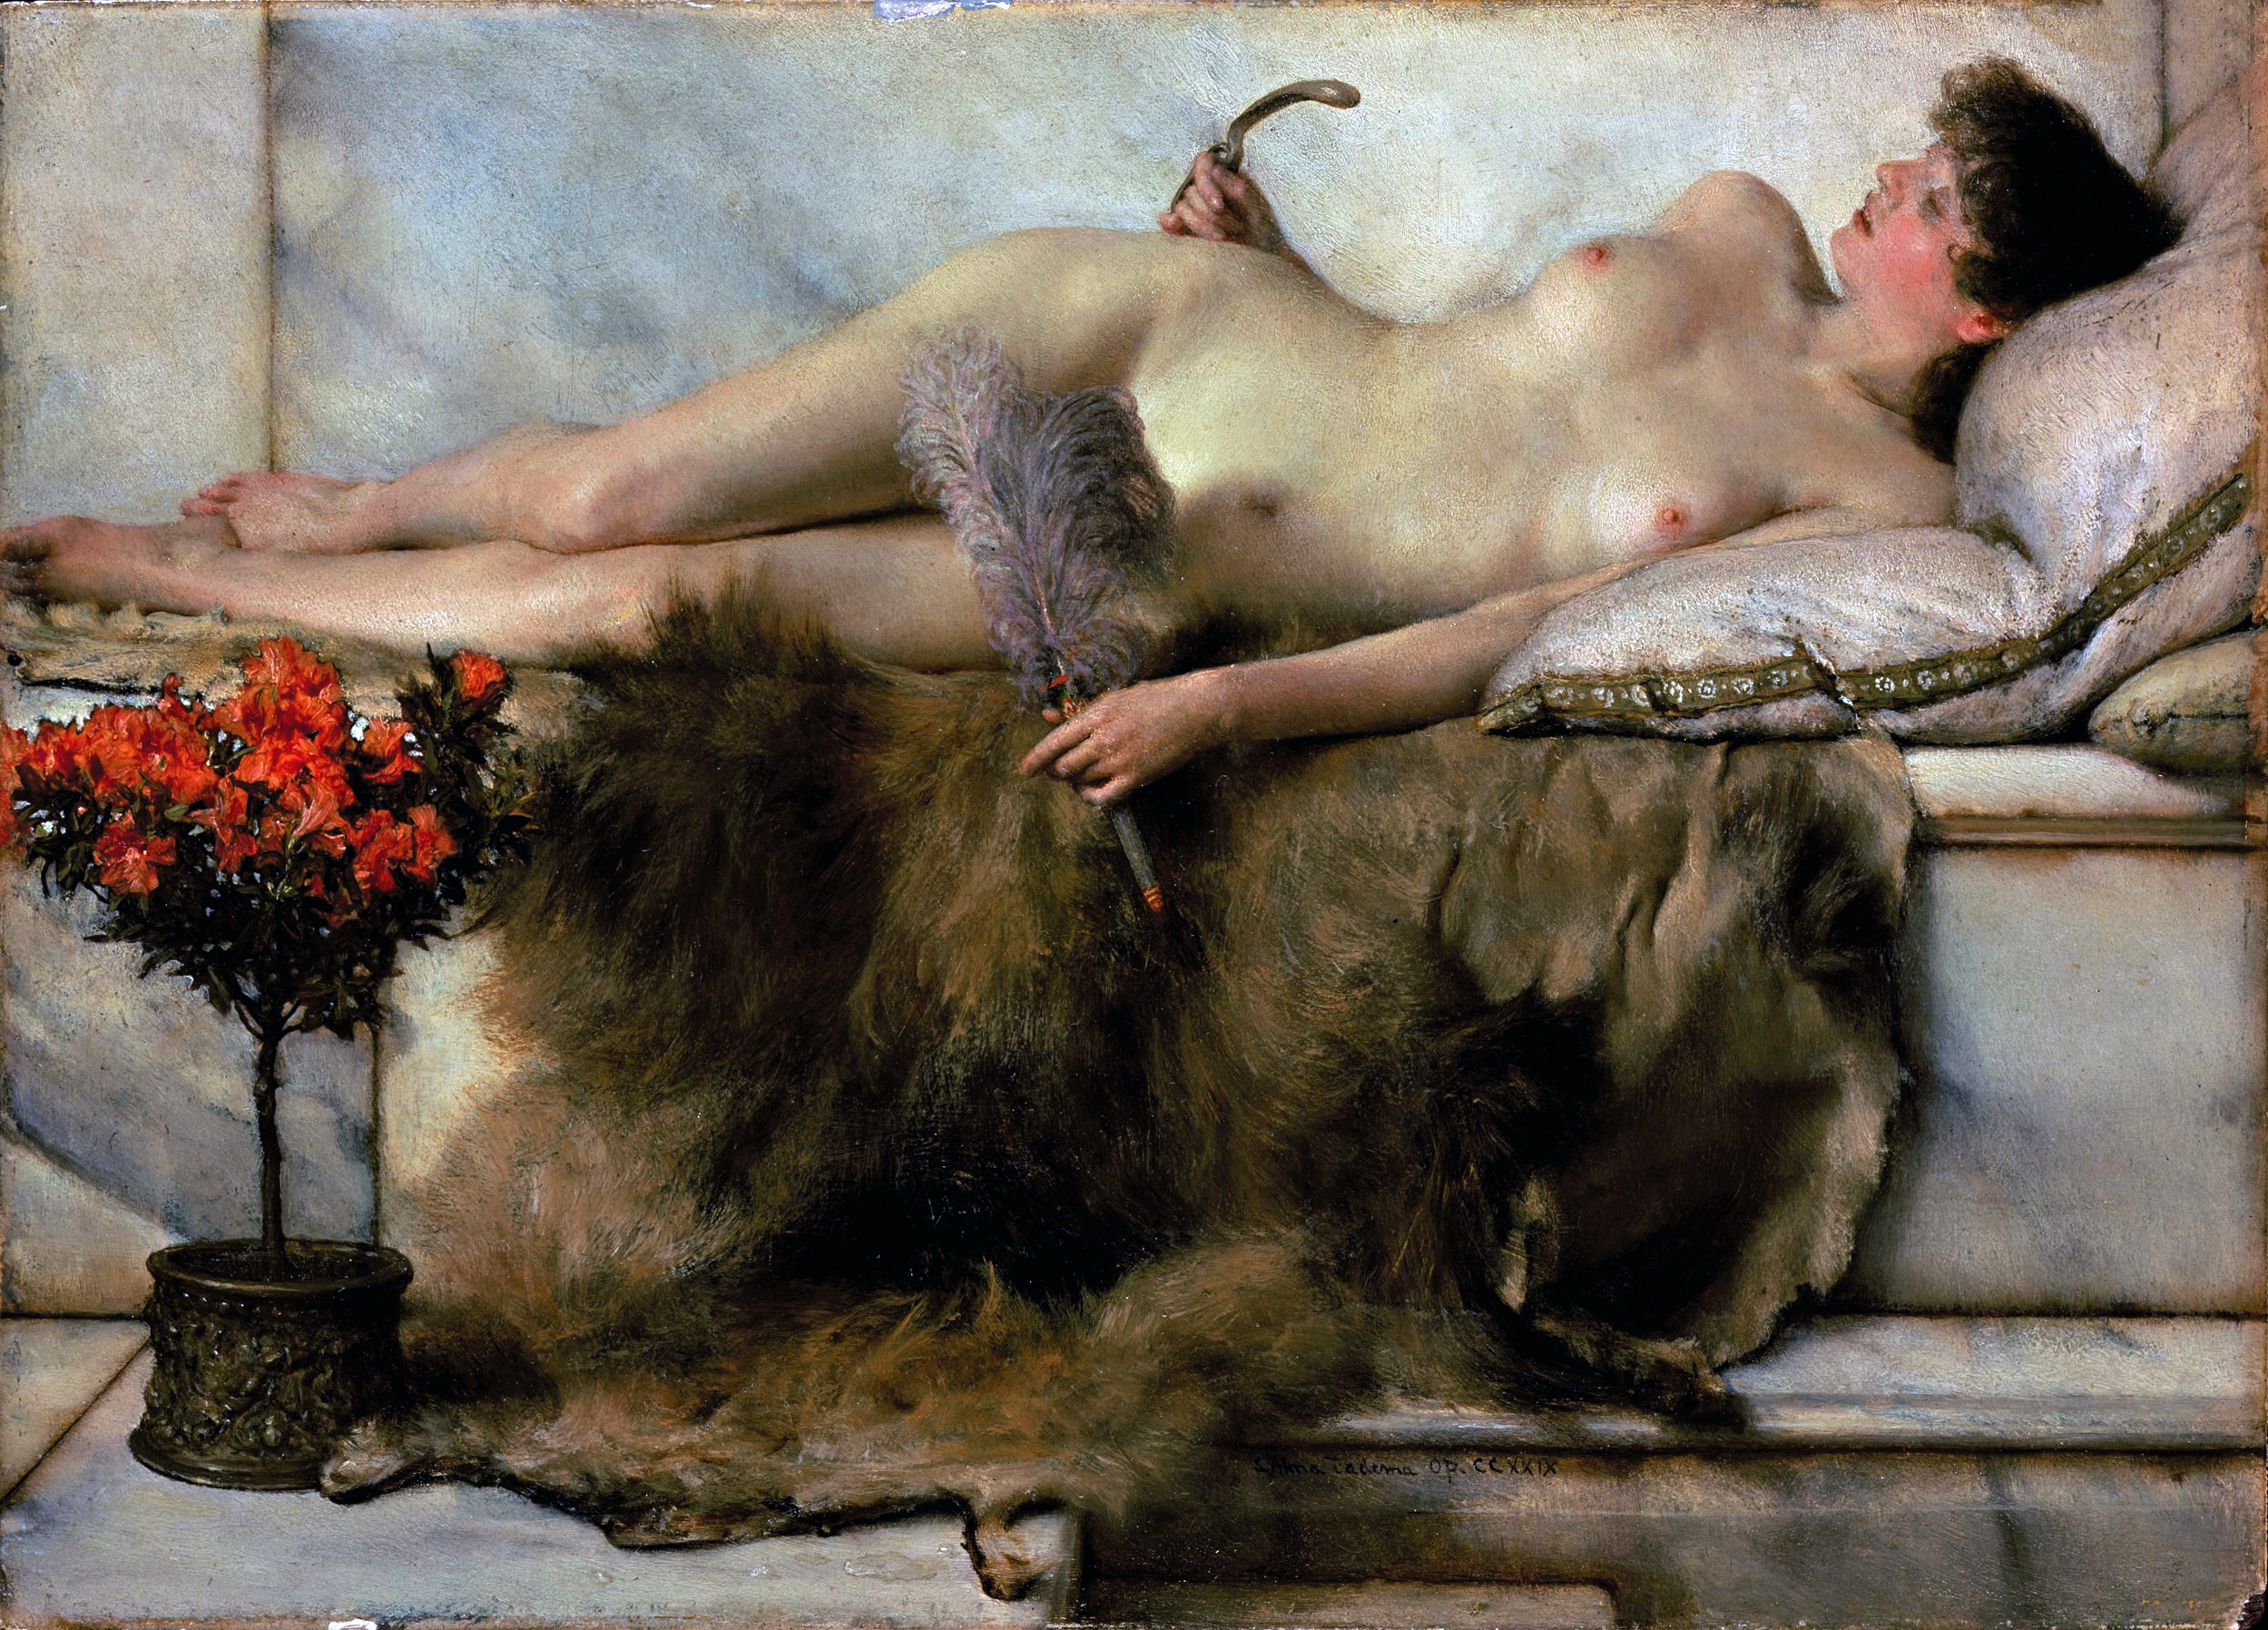 http://upload.wikimedia.org/wikipedia/commons/7/7d/Tepidarium_Lawrence_Alma-Tadema_(1836-1912).jpg